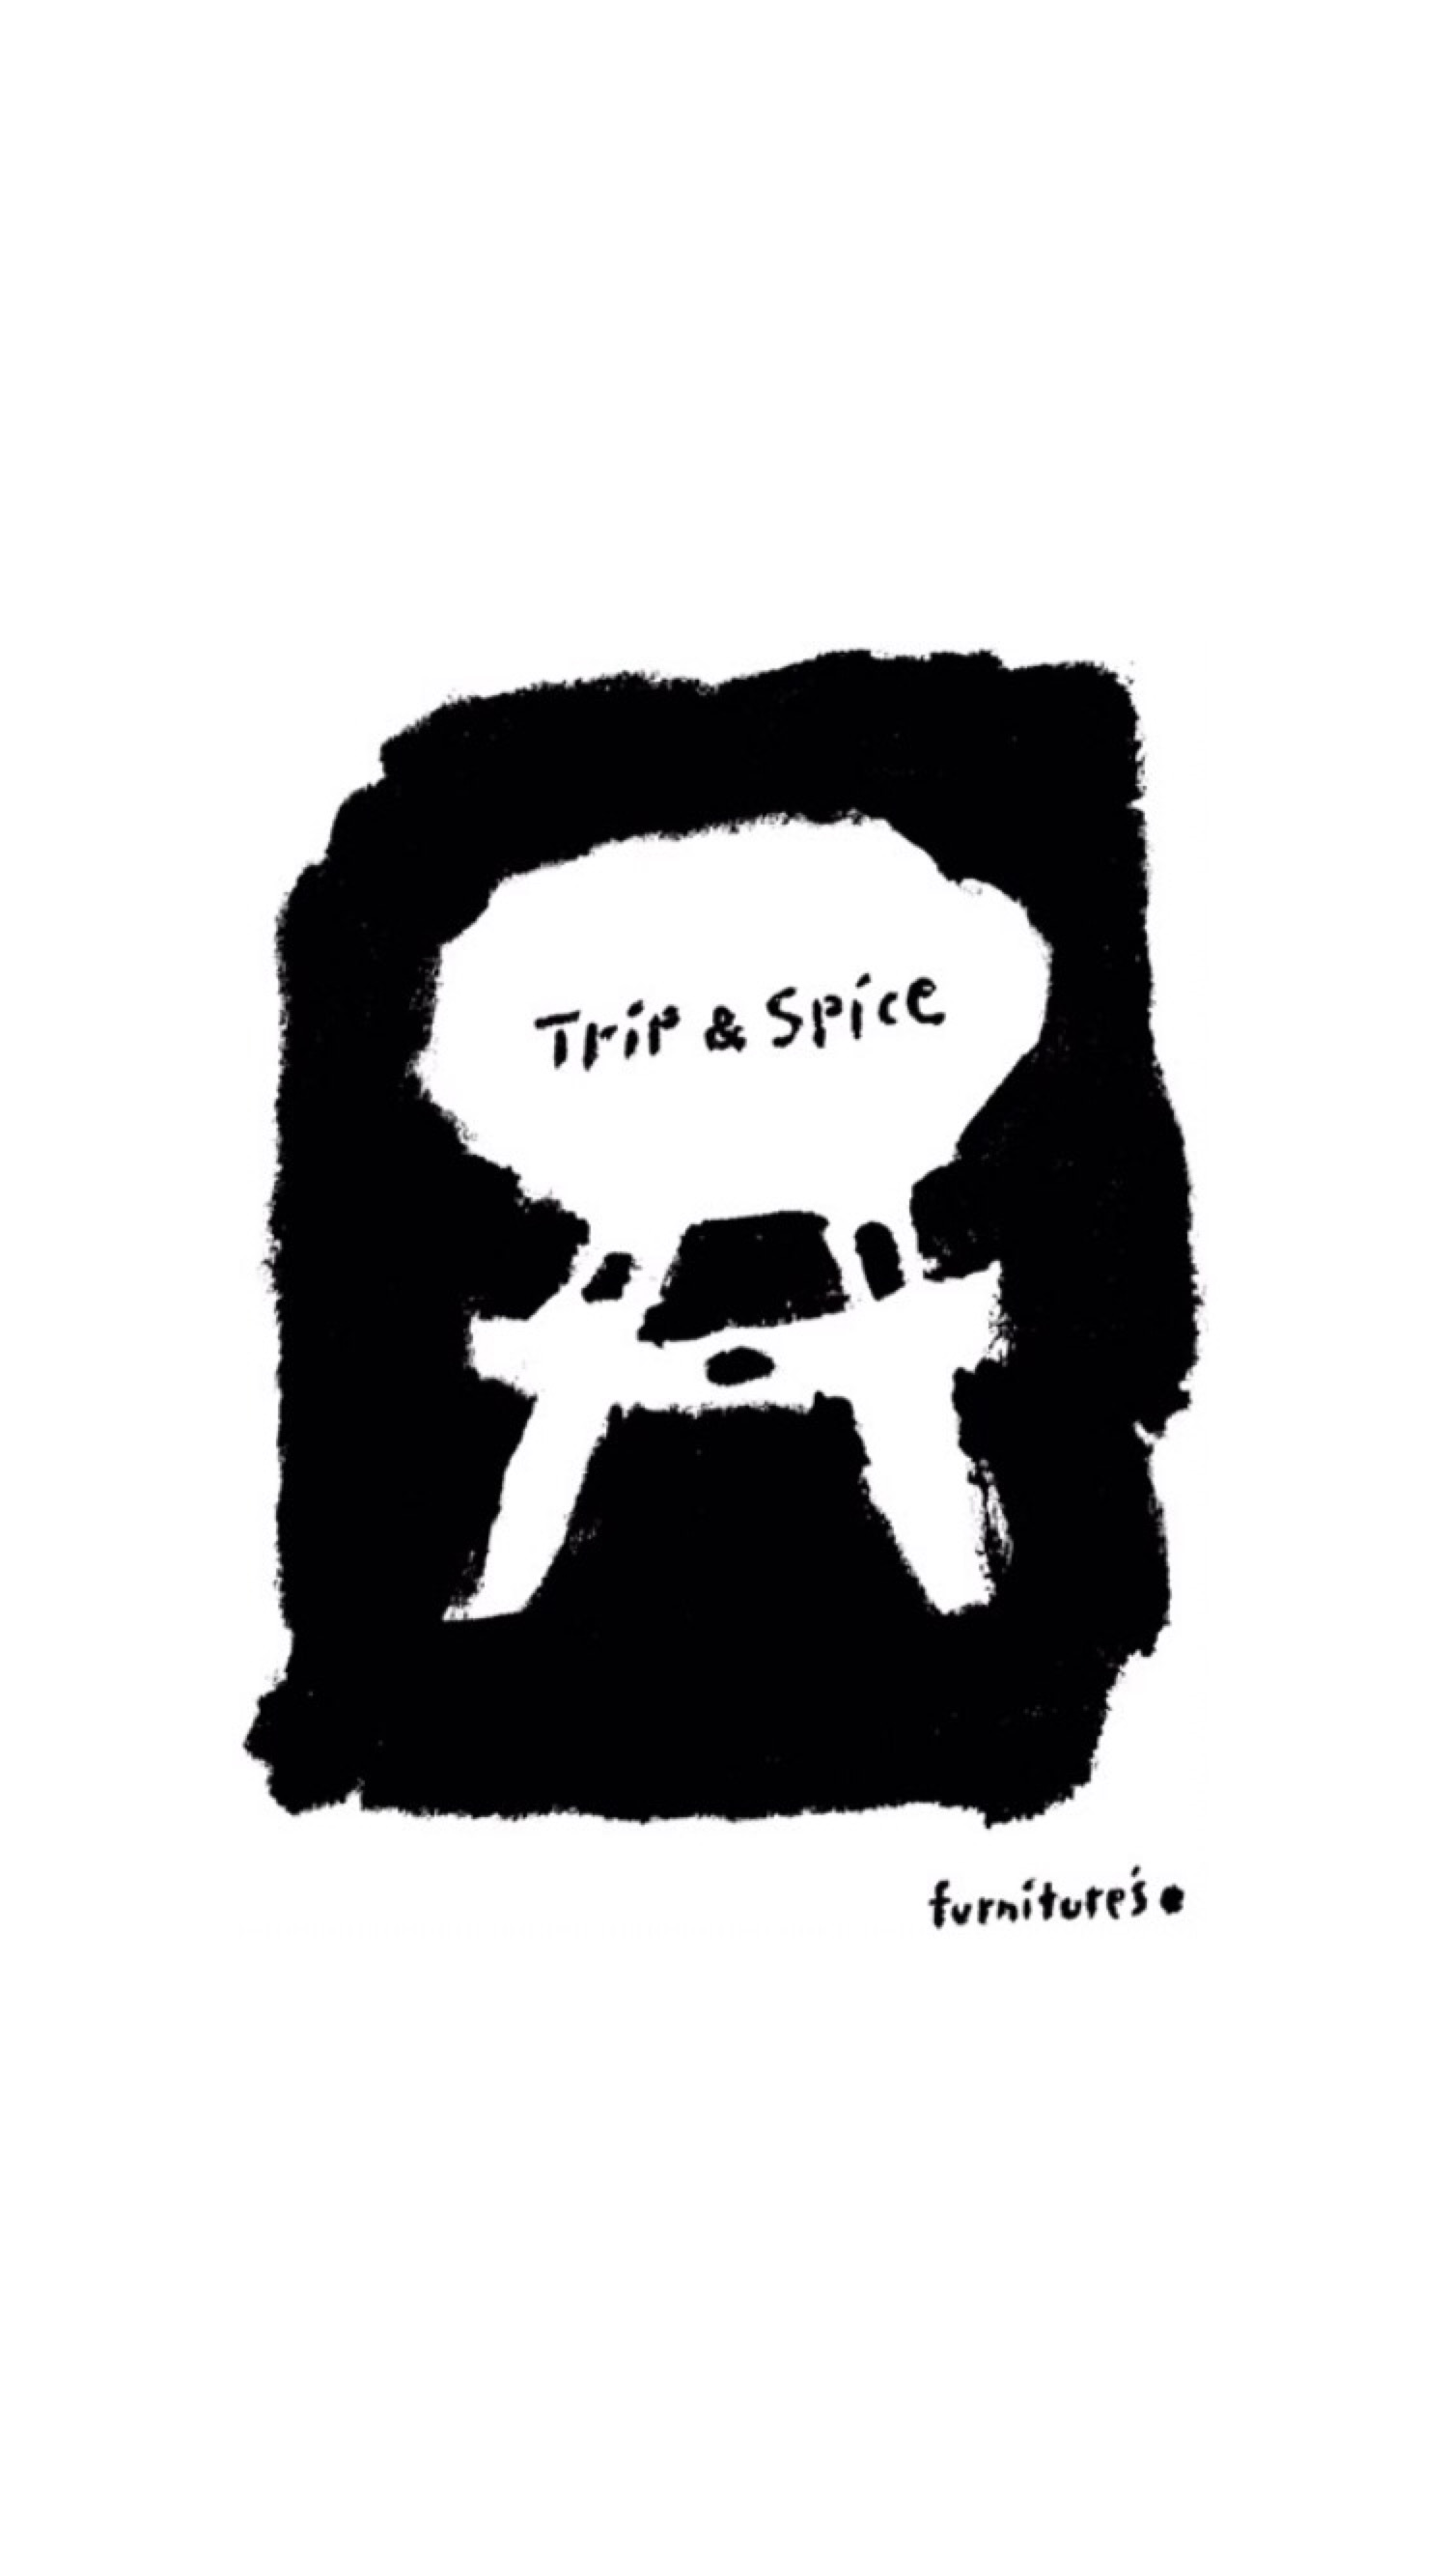 furniture's Trip & Spice